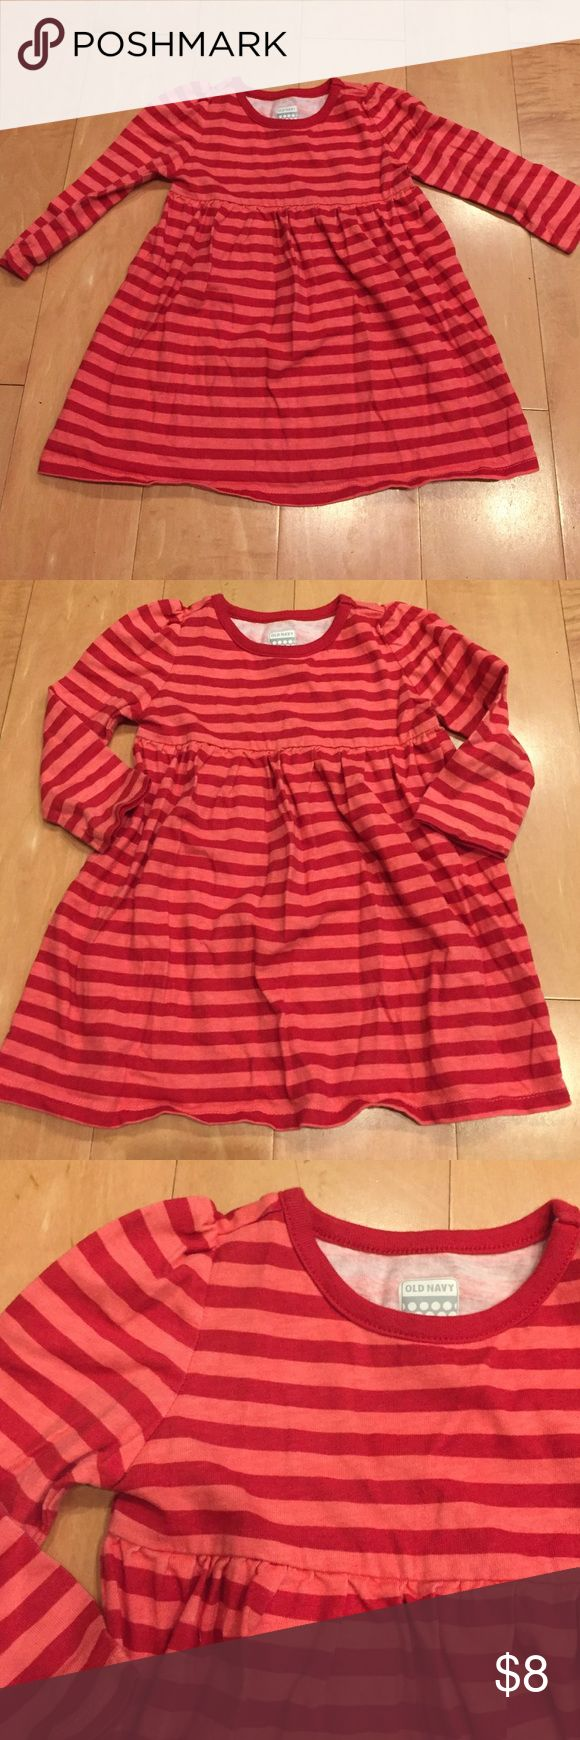 Old Navy pink/red striped dress Old Navy pink/red striped dress Old Navy Dresses Casual